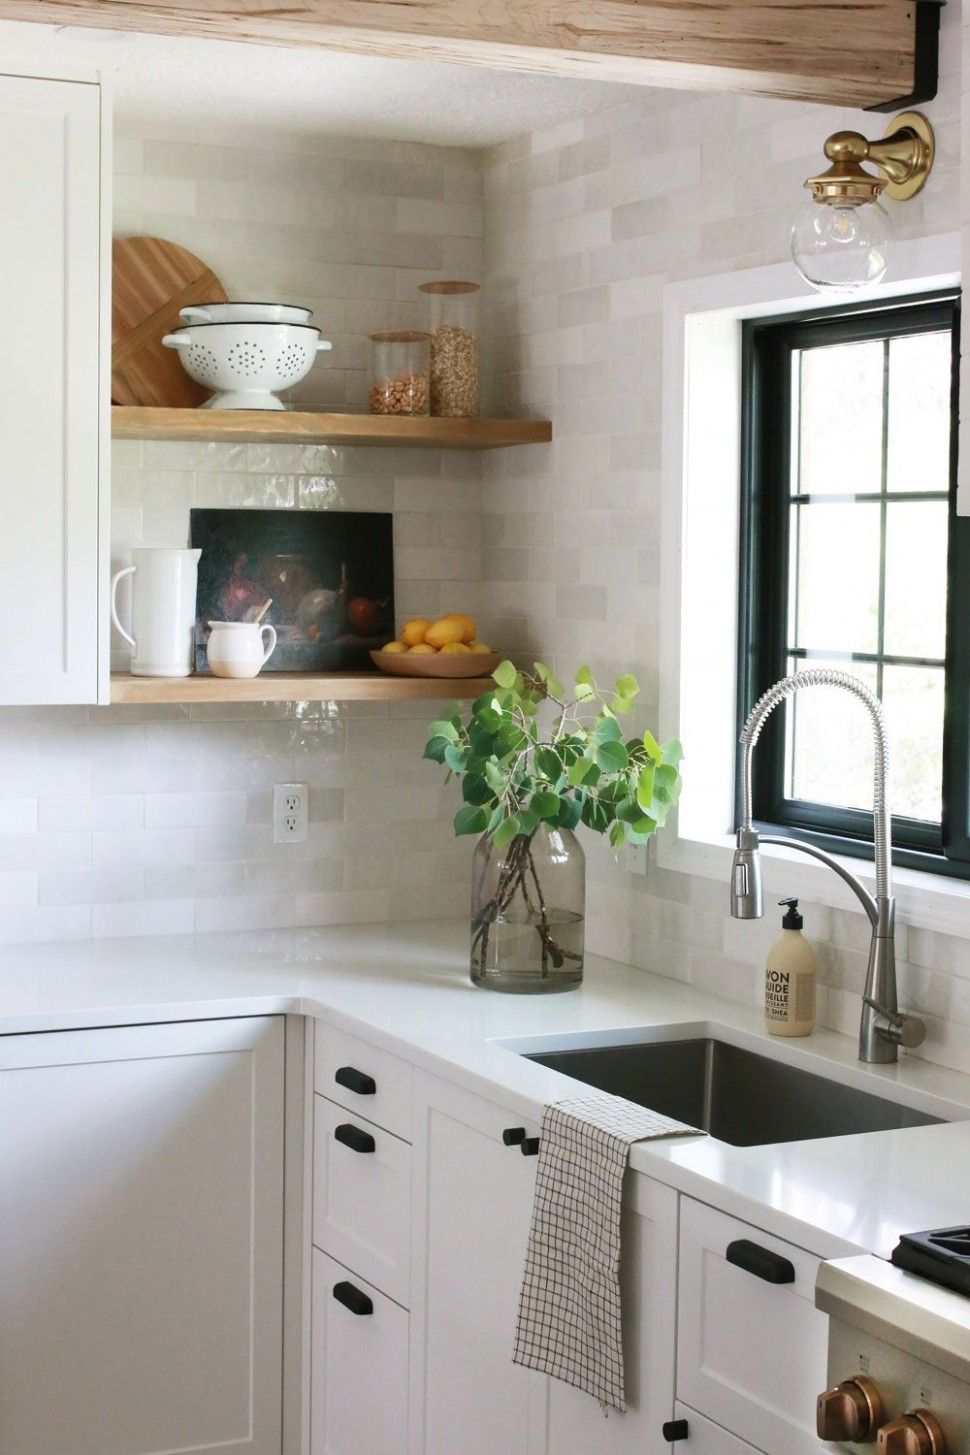 How to Buy Ready-made Kitchen Cabinets and Make Them Look Custom - Beautiful Kitchen Cabinets For Sale